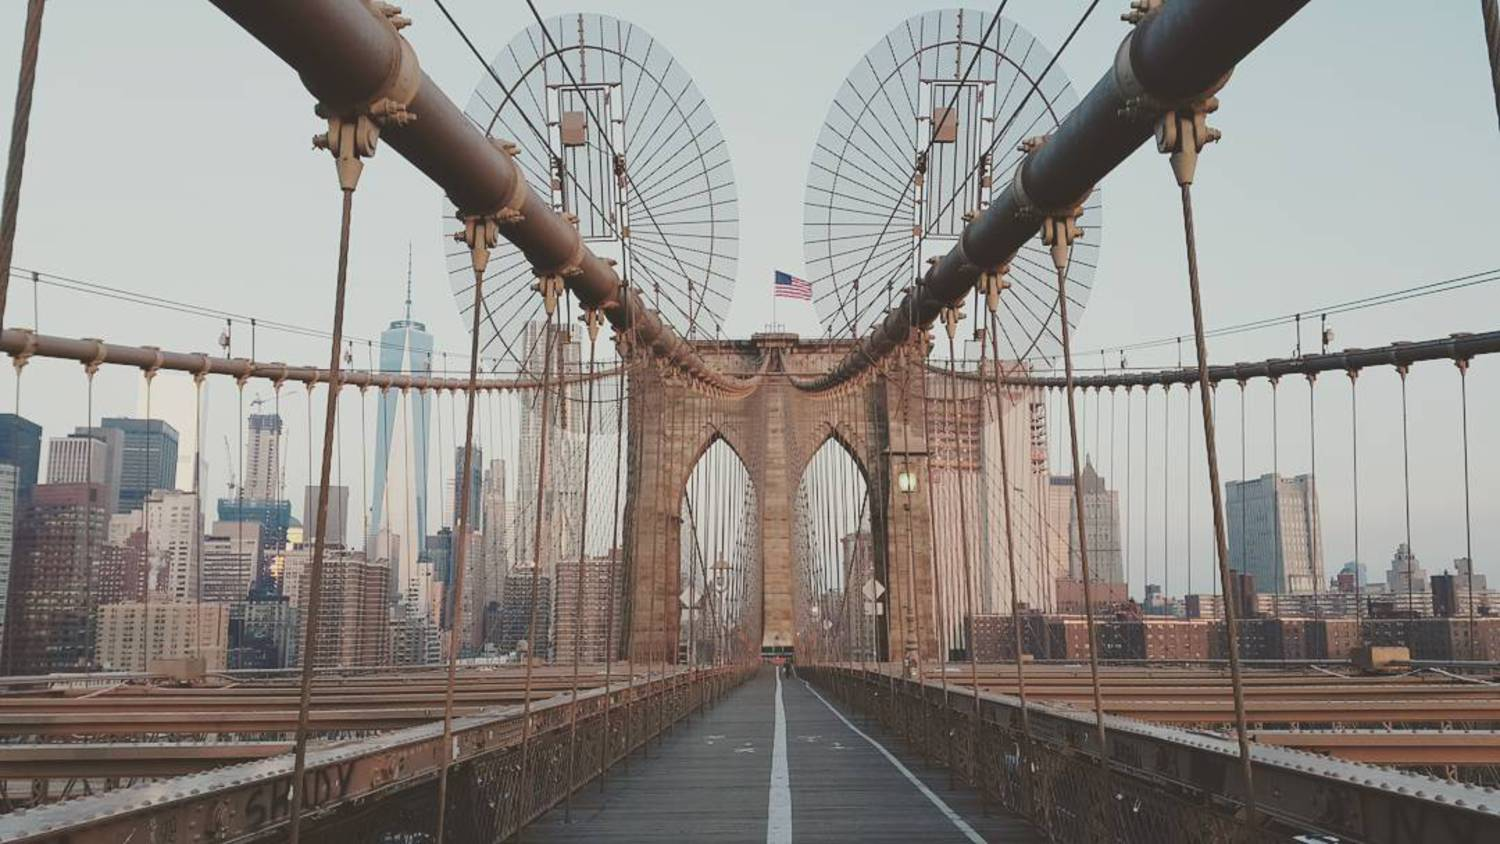 How's this shot of the #BrooklynBridge in #NewYork?